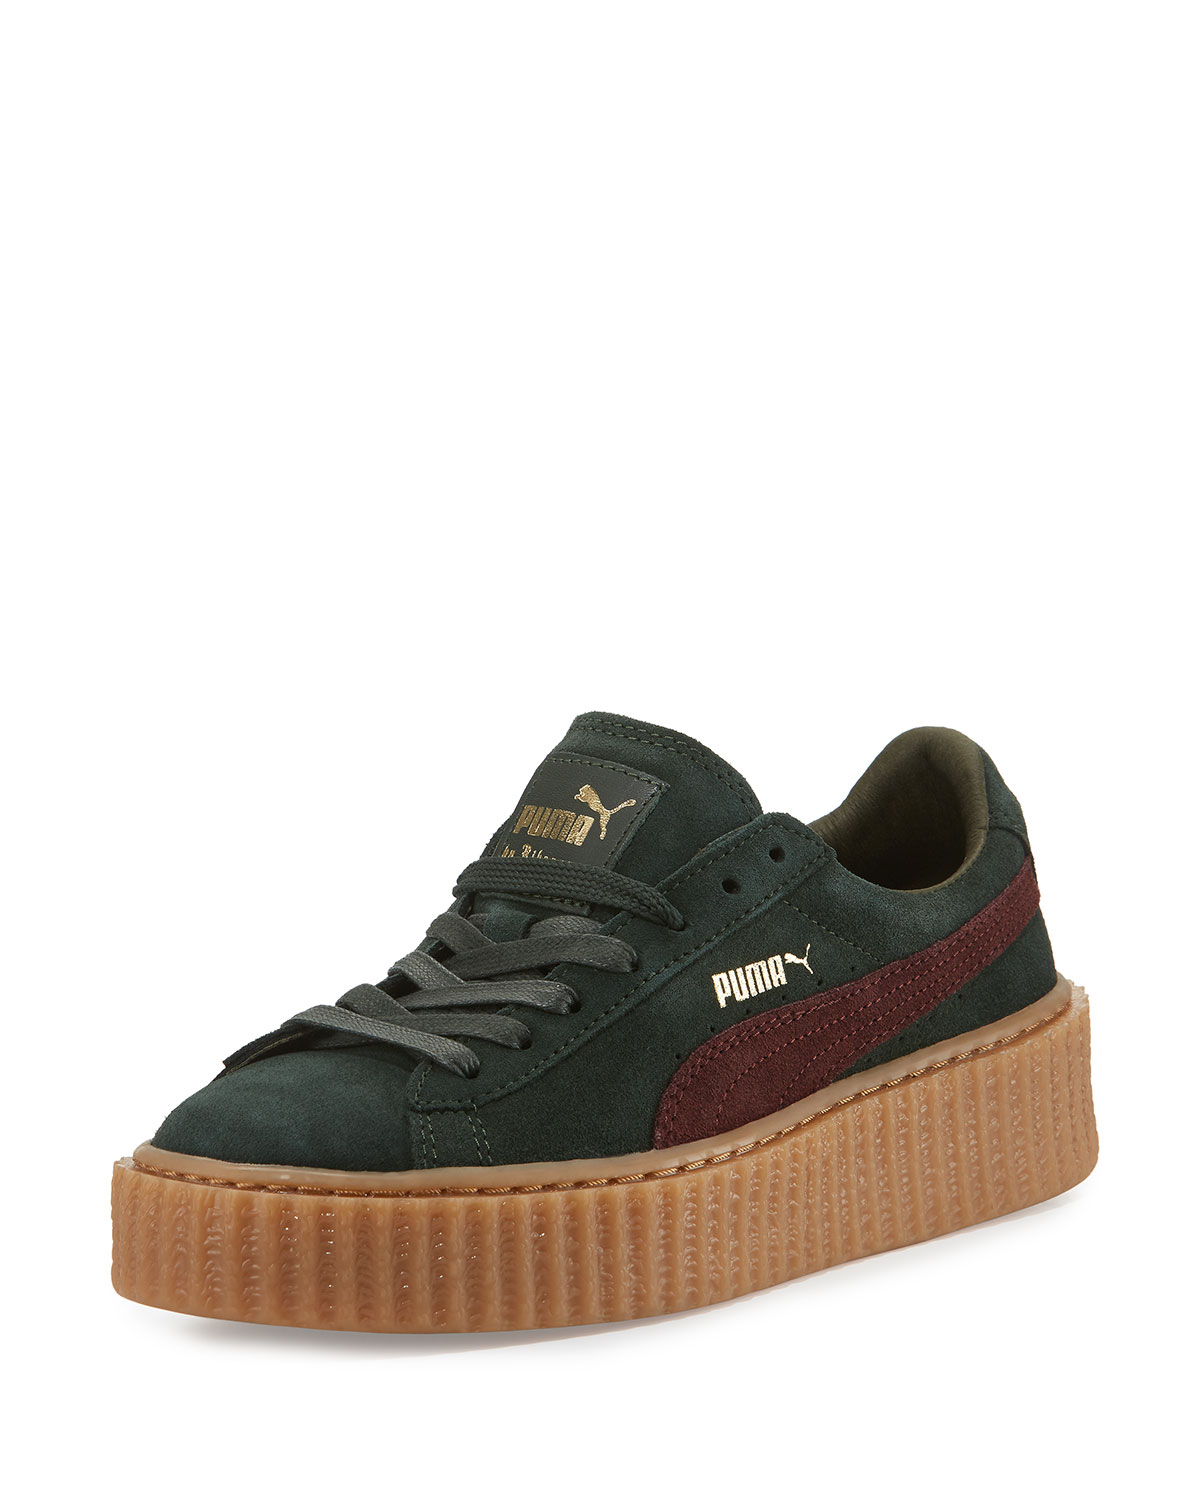 new style 405ea 12546 Suede Platform Creeper, Green/Bordeaux